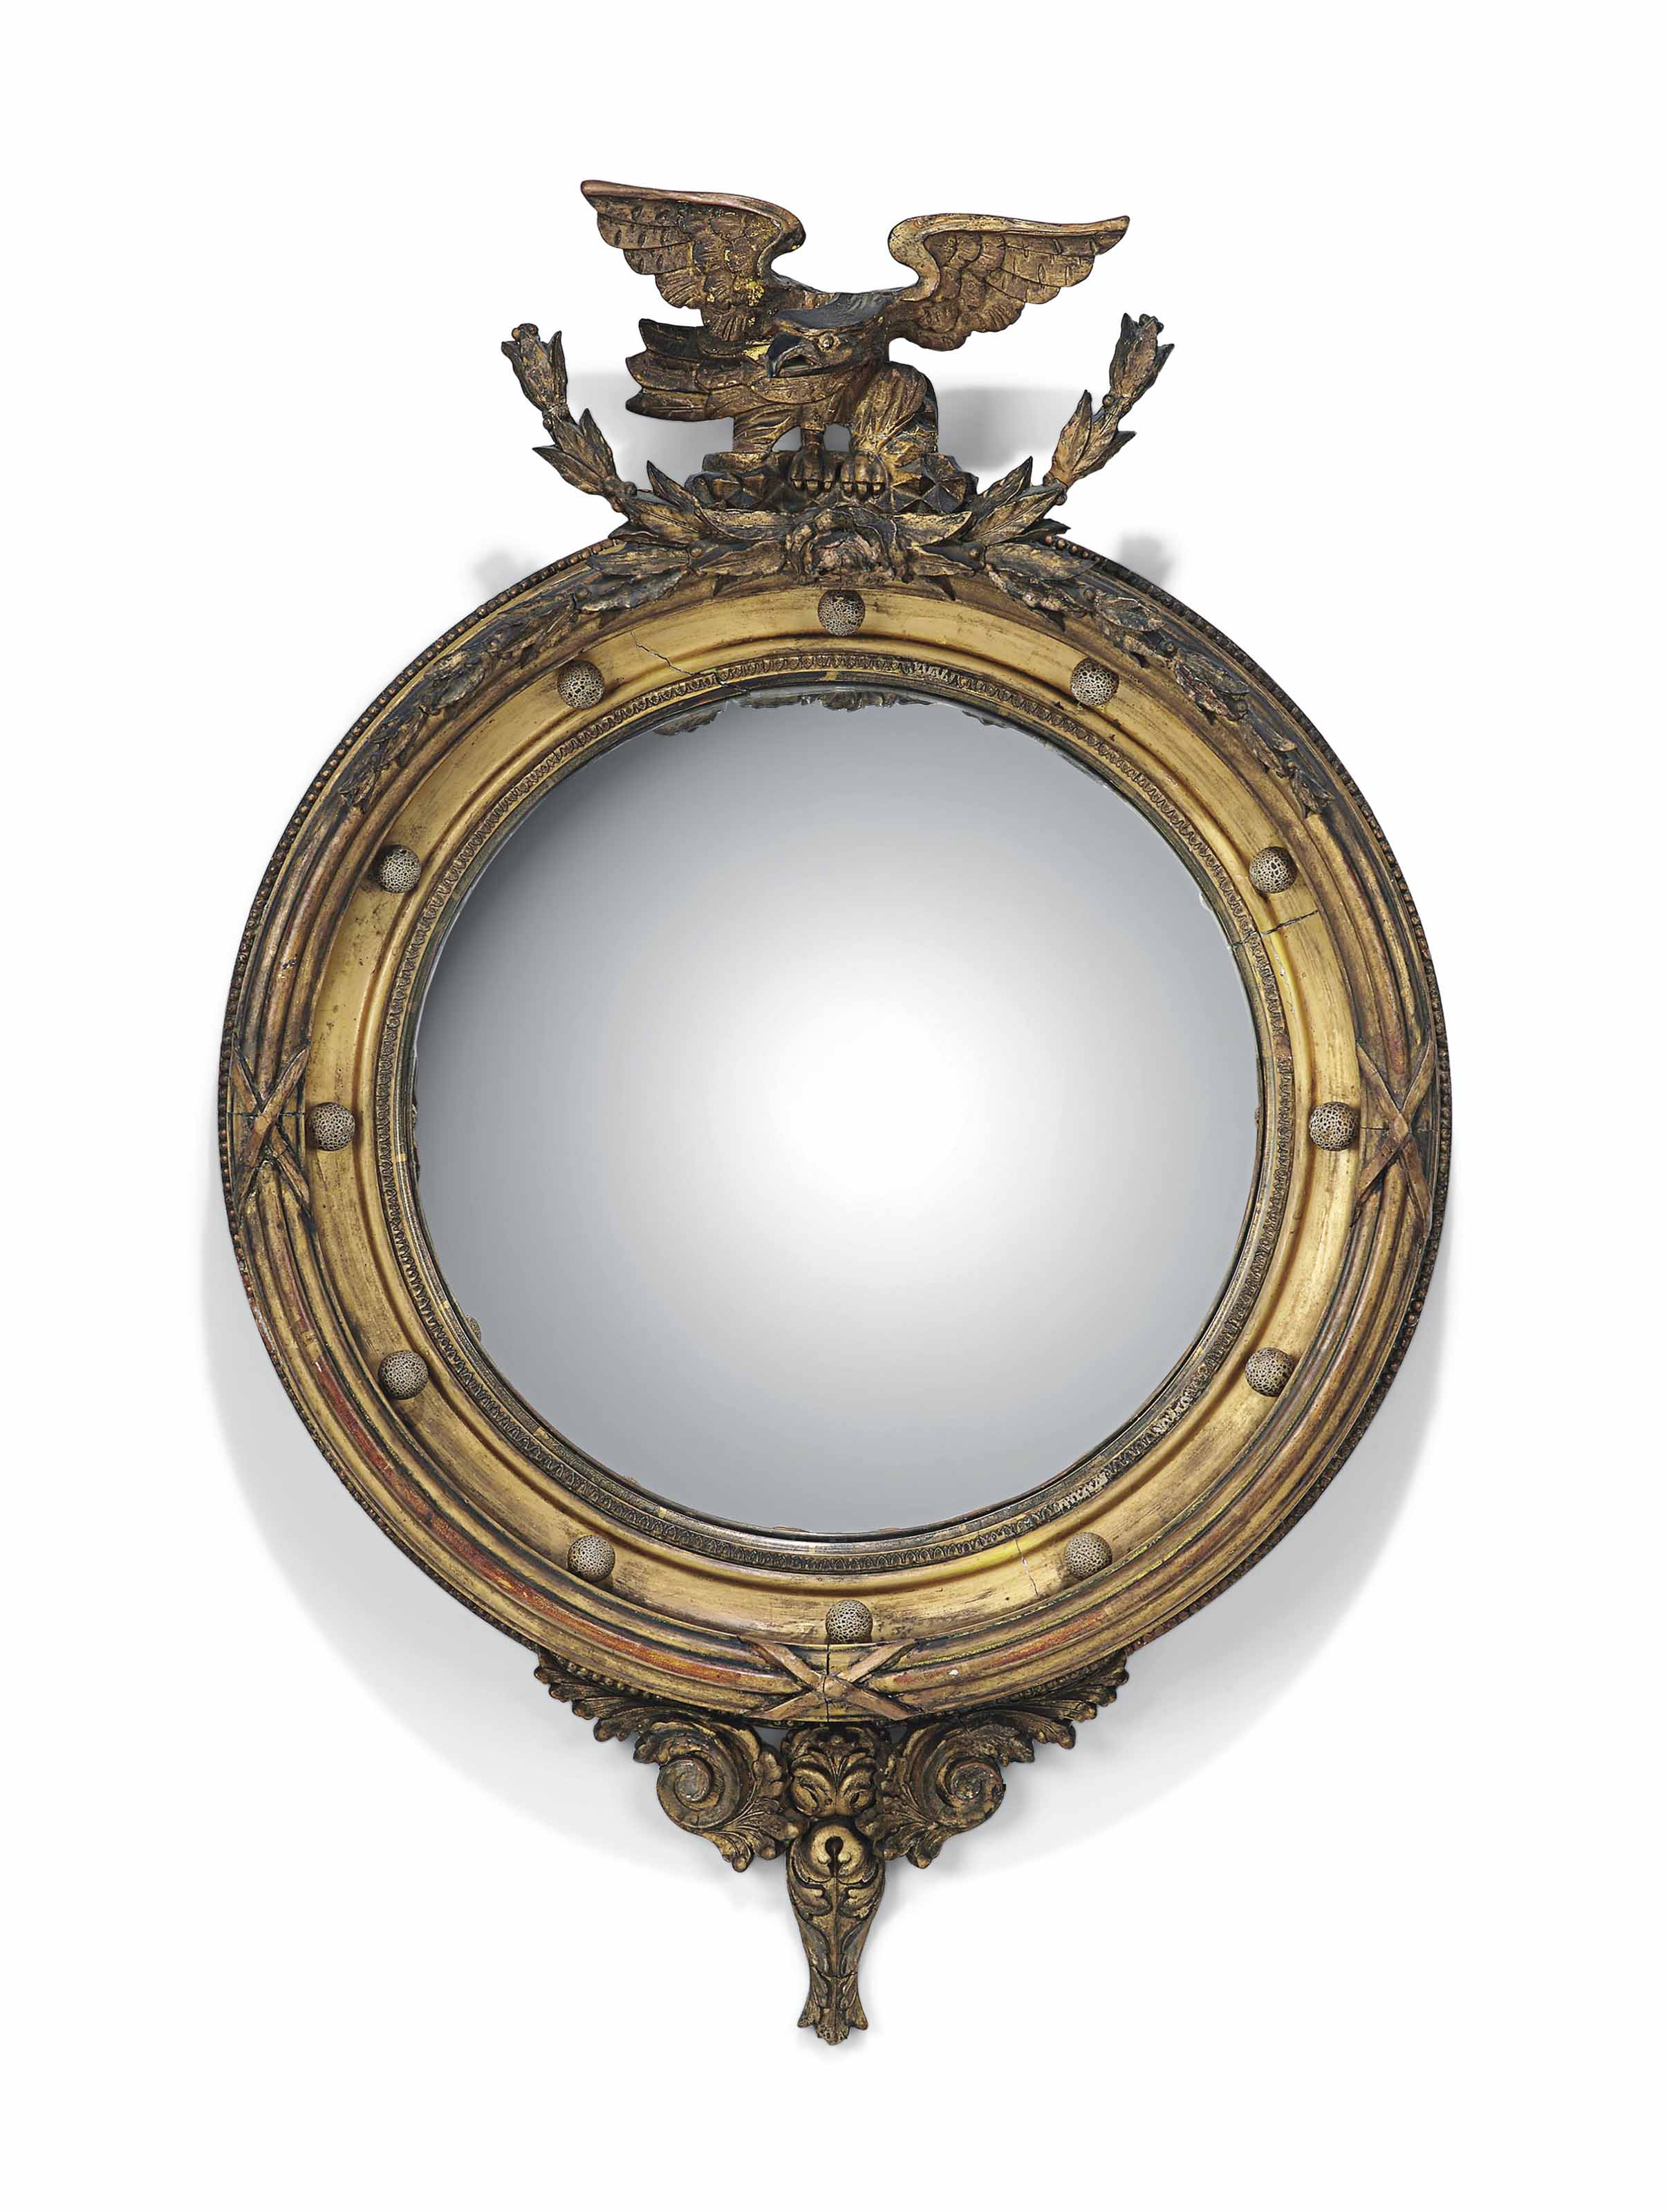 A GEORGE IV GILTWOOD AND GILT-